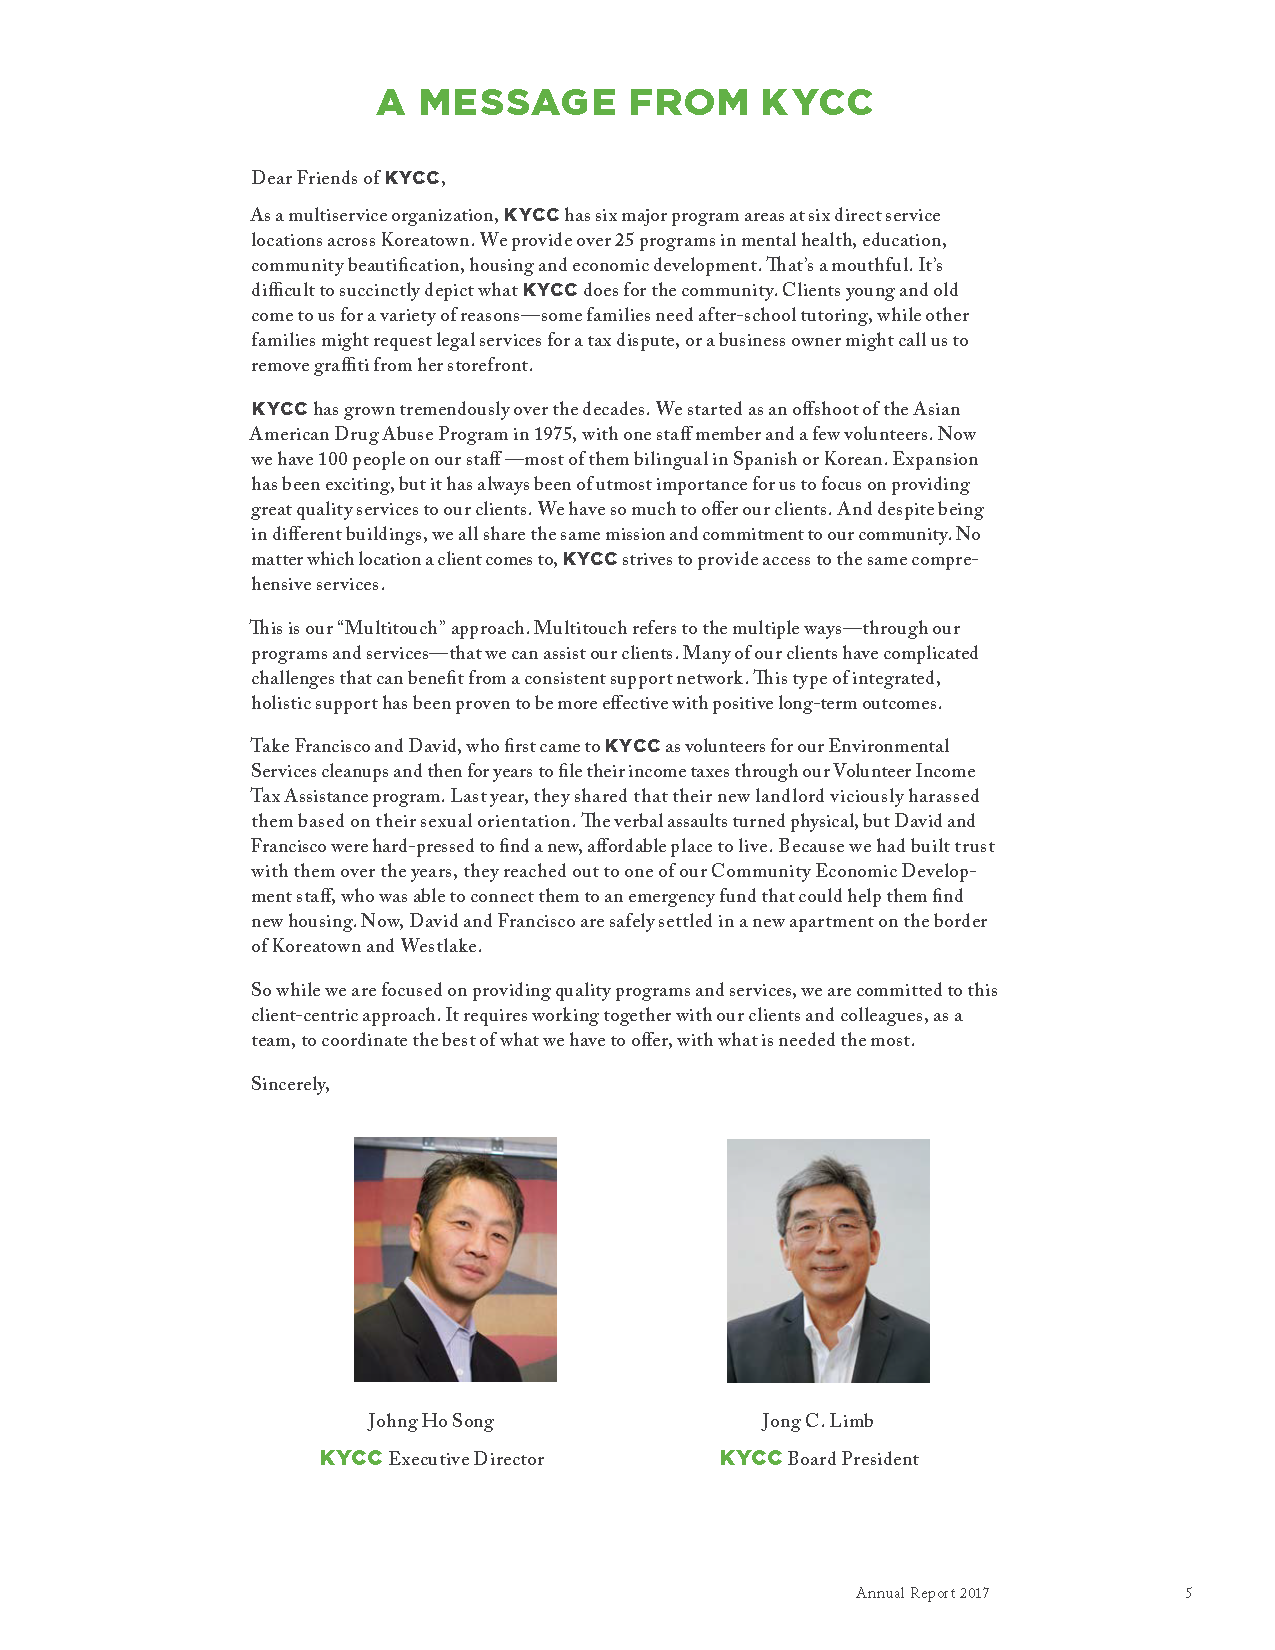 KYCC_Annual-Report-2016-2017-sm_Page_05.png